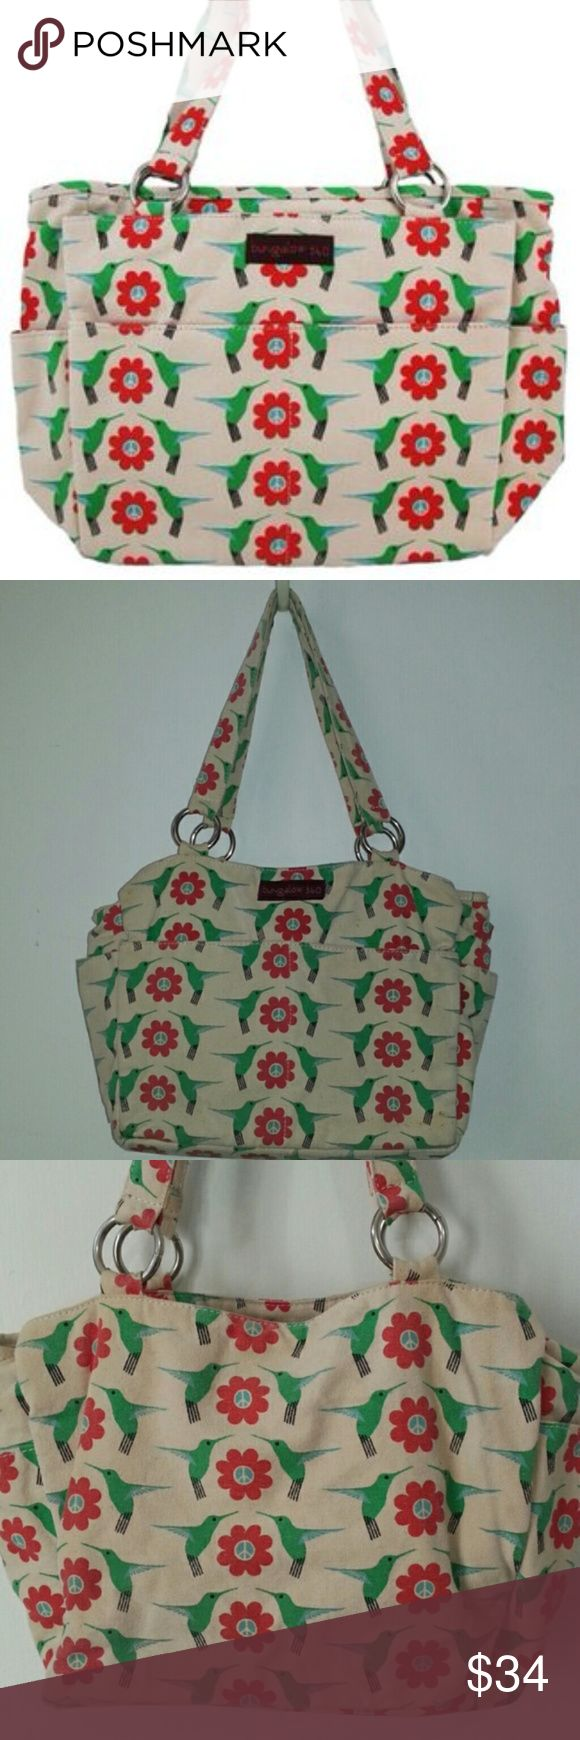 """Bungalow360 Hummingbirds&Peace Flowers Pocket Tote 4 outside panel pockets 2 side compartments with velcro closures Outer Material: canvas White polka dots on red lining. 11"""" x 10"""" x 4.5"""" 100% natural cotton canvas Bungalow 360 Bags Totes"""